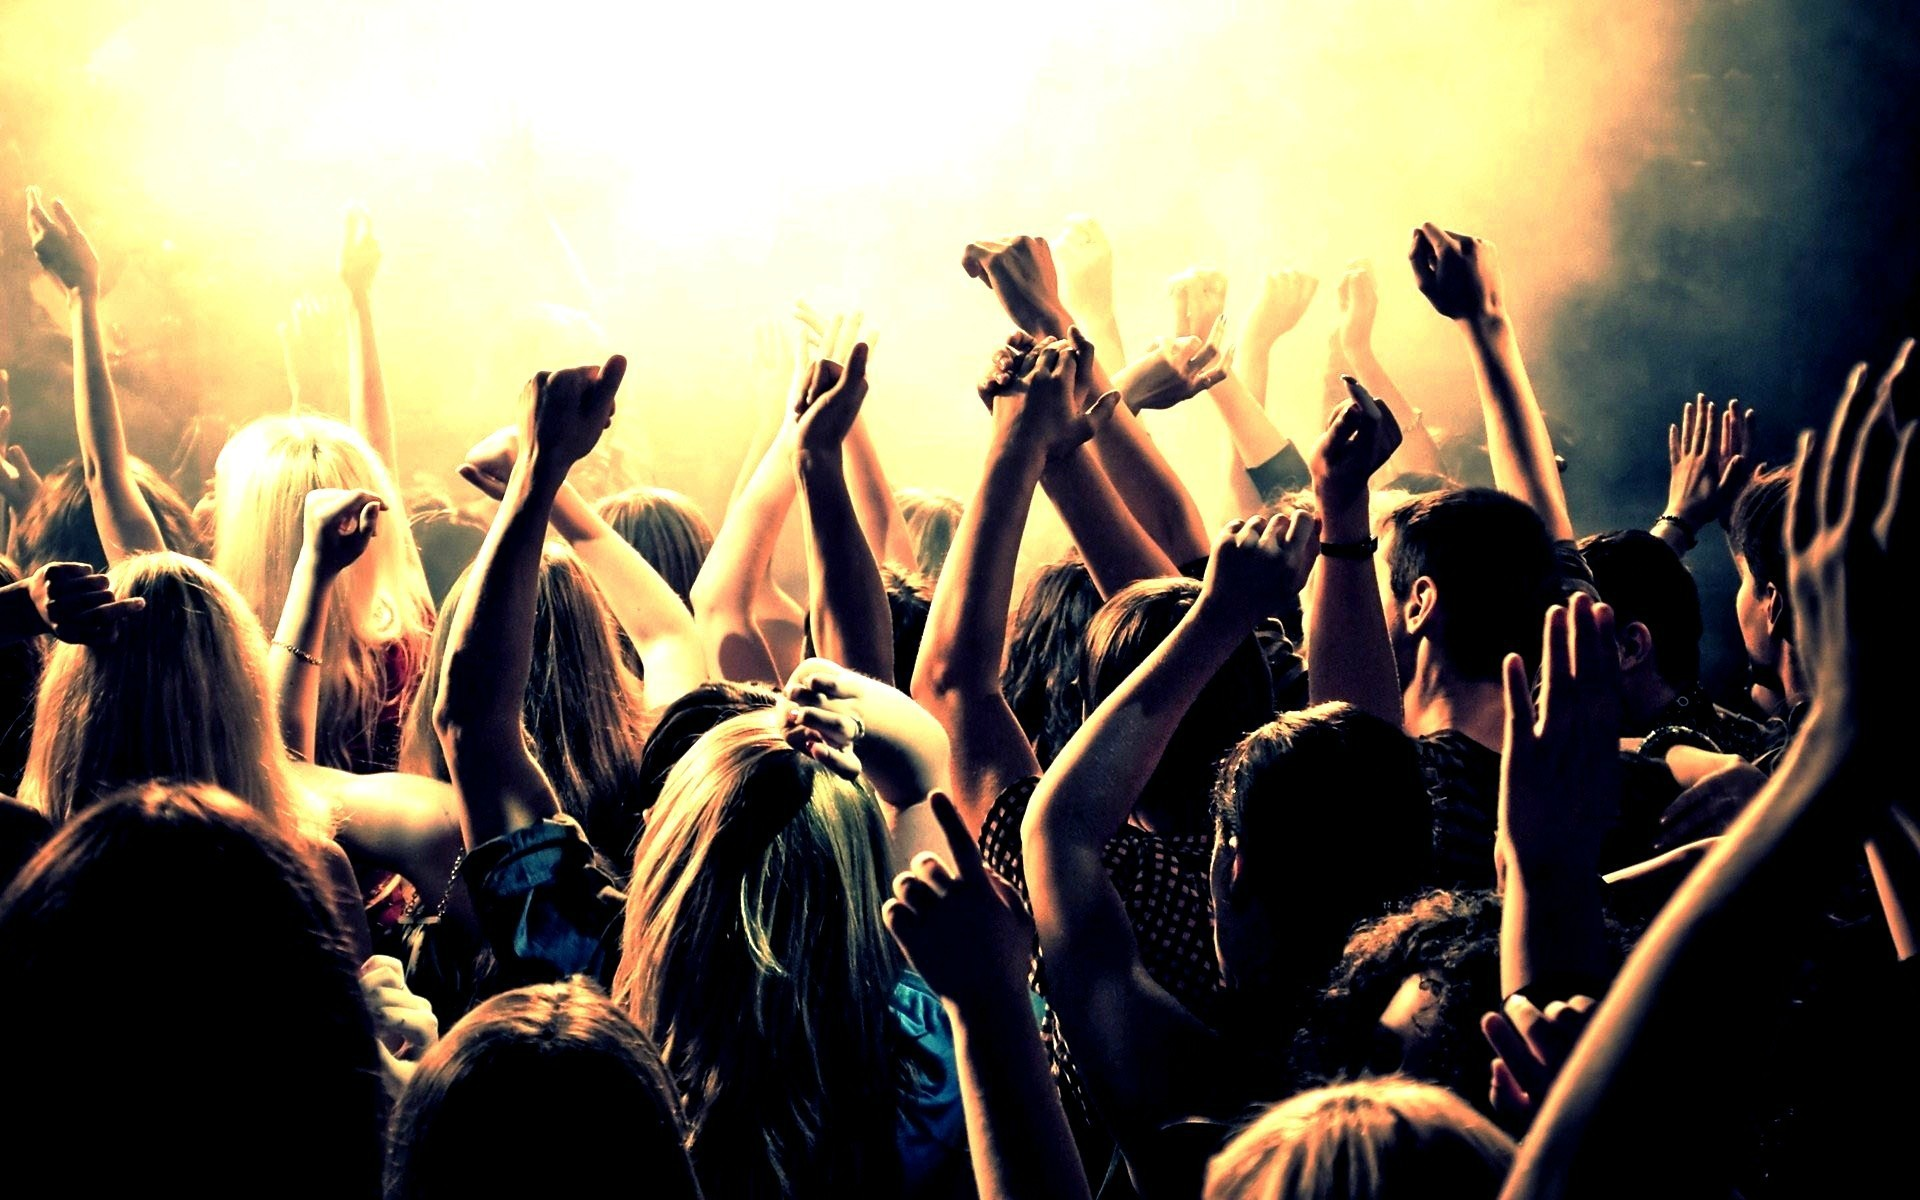 Nightlife crowd HD Wallpaper